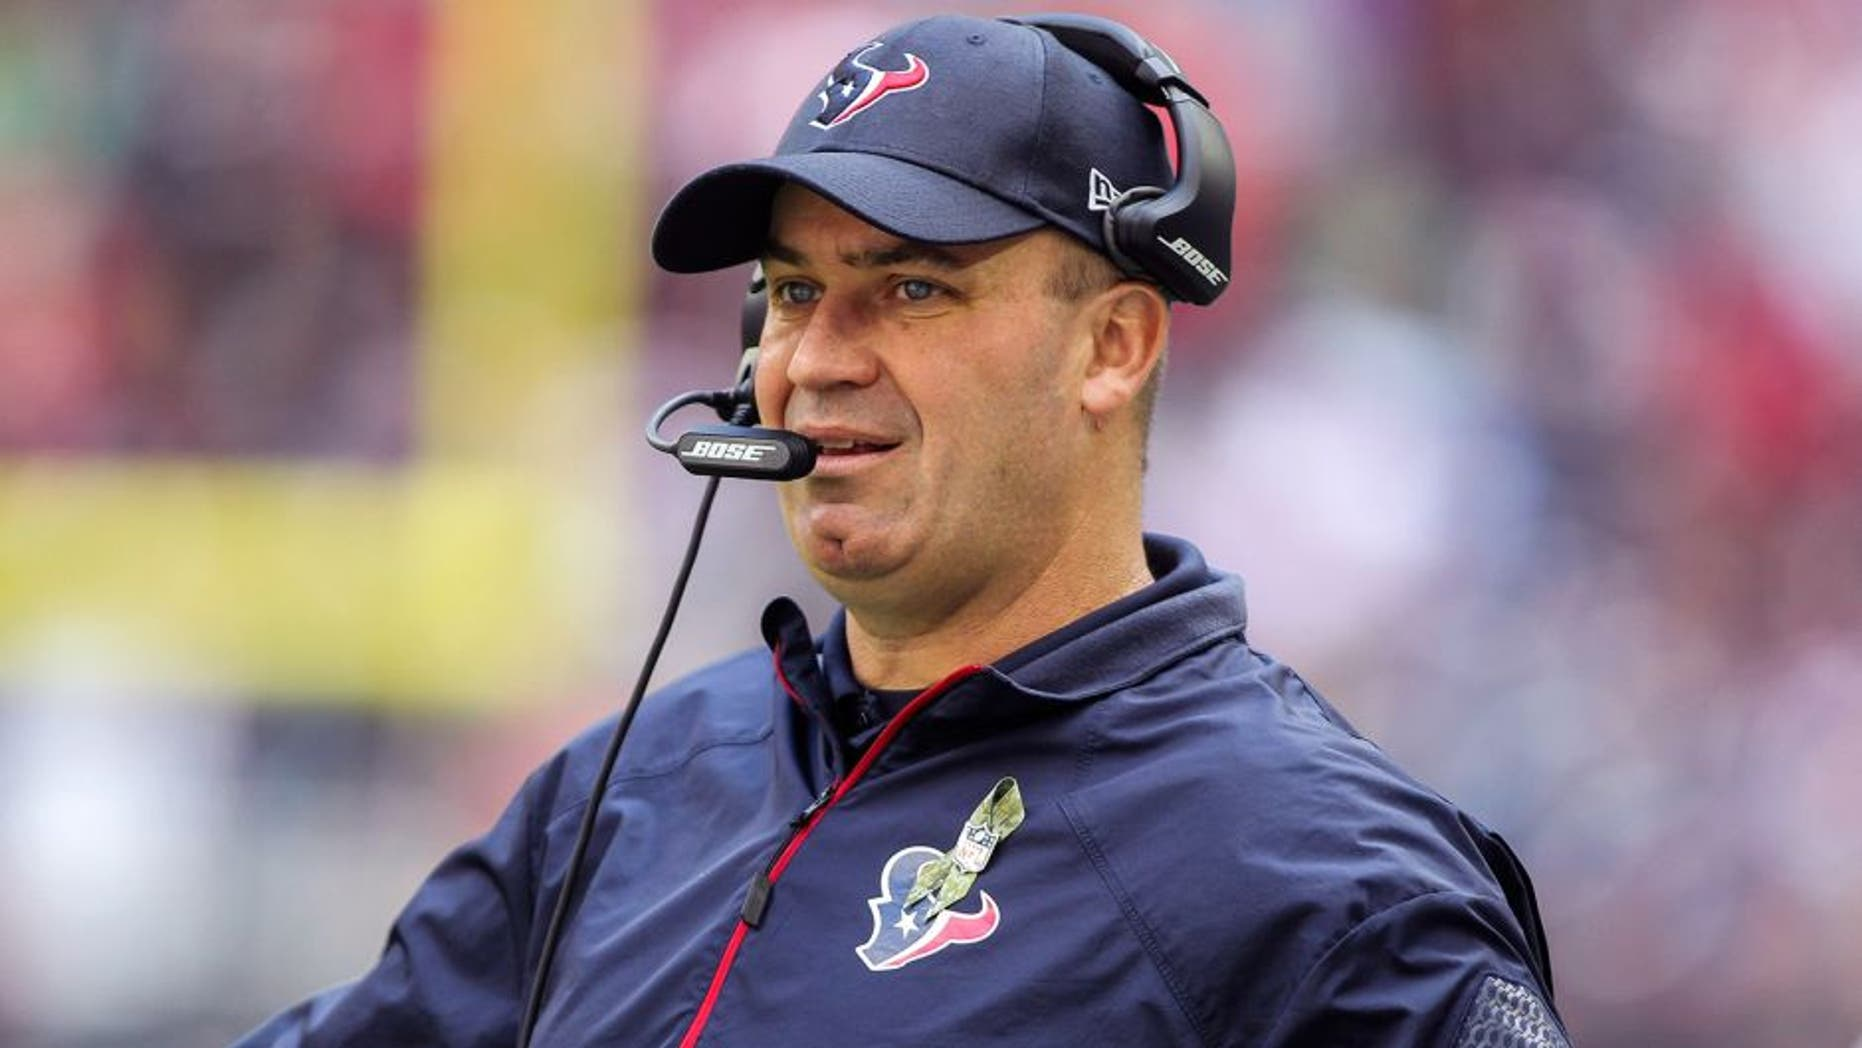 Nov 30, 2014; Houston, TX, USA; Houston Texans head coach Bill O'Brien on the sideline during the second quarter against the Tennessee Titans at NRG Stadium. Mandatory Credit: Troy Taormina-USA TODAY Sports